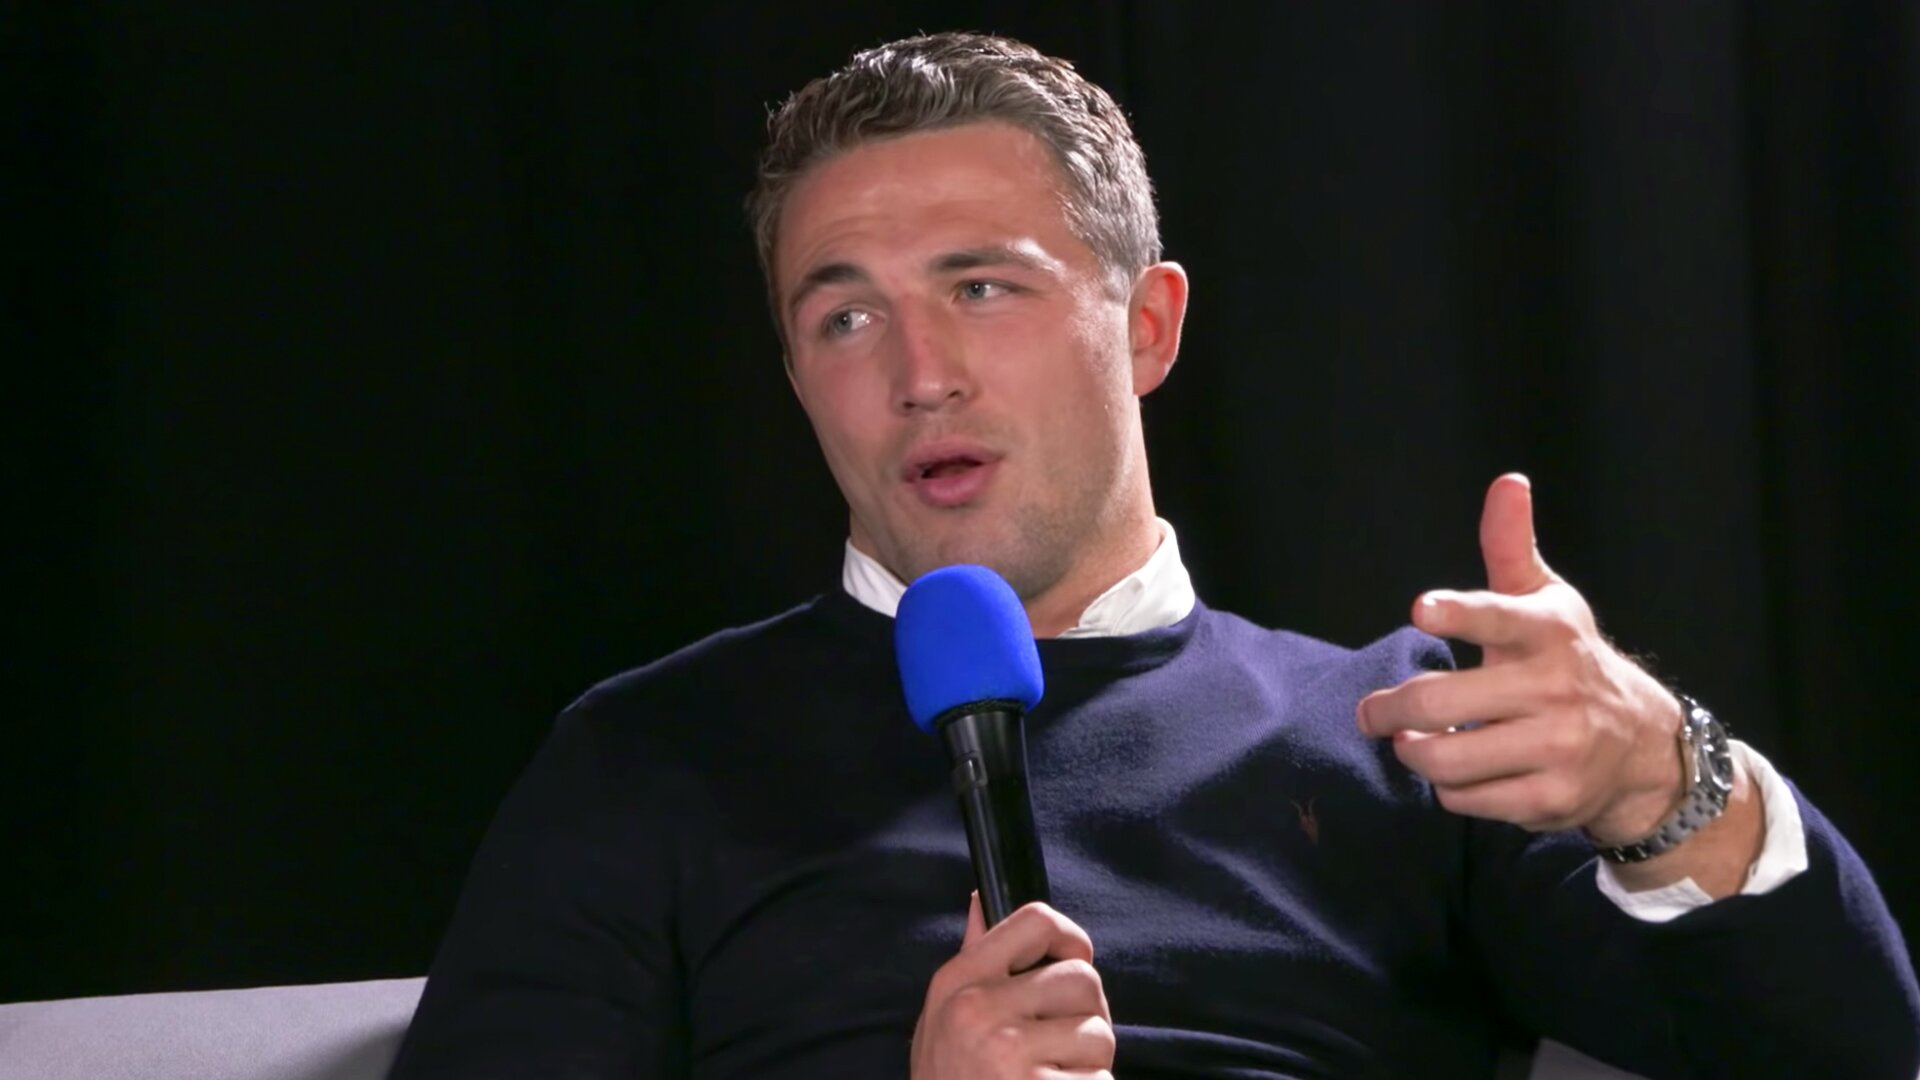 Sam Burgess launches scathing attack on former teammate in explosive new interview